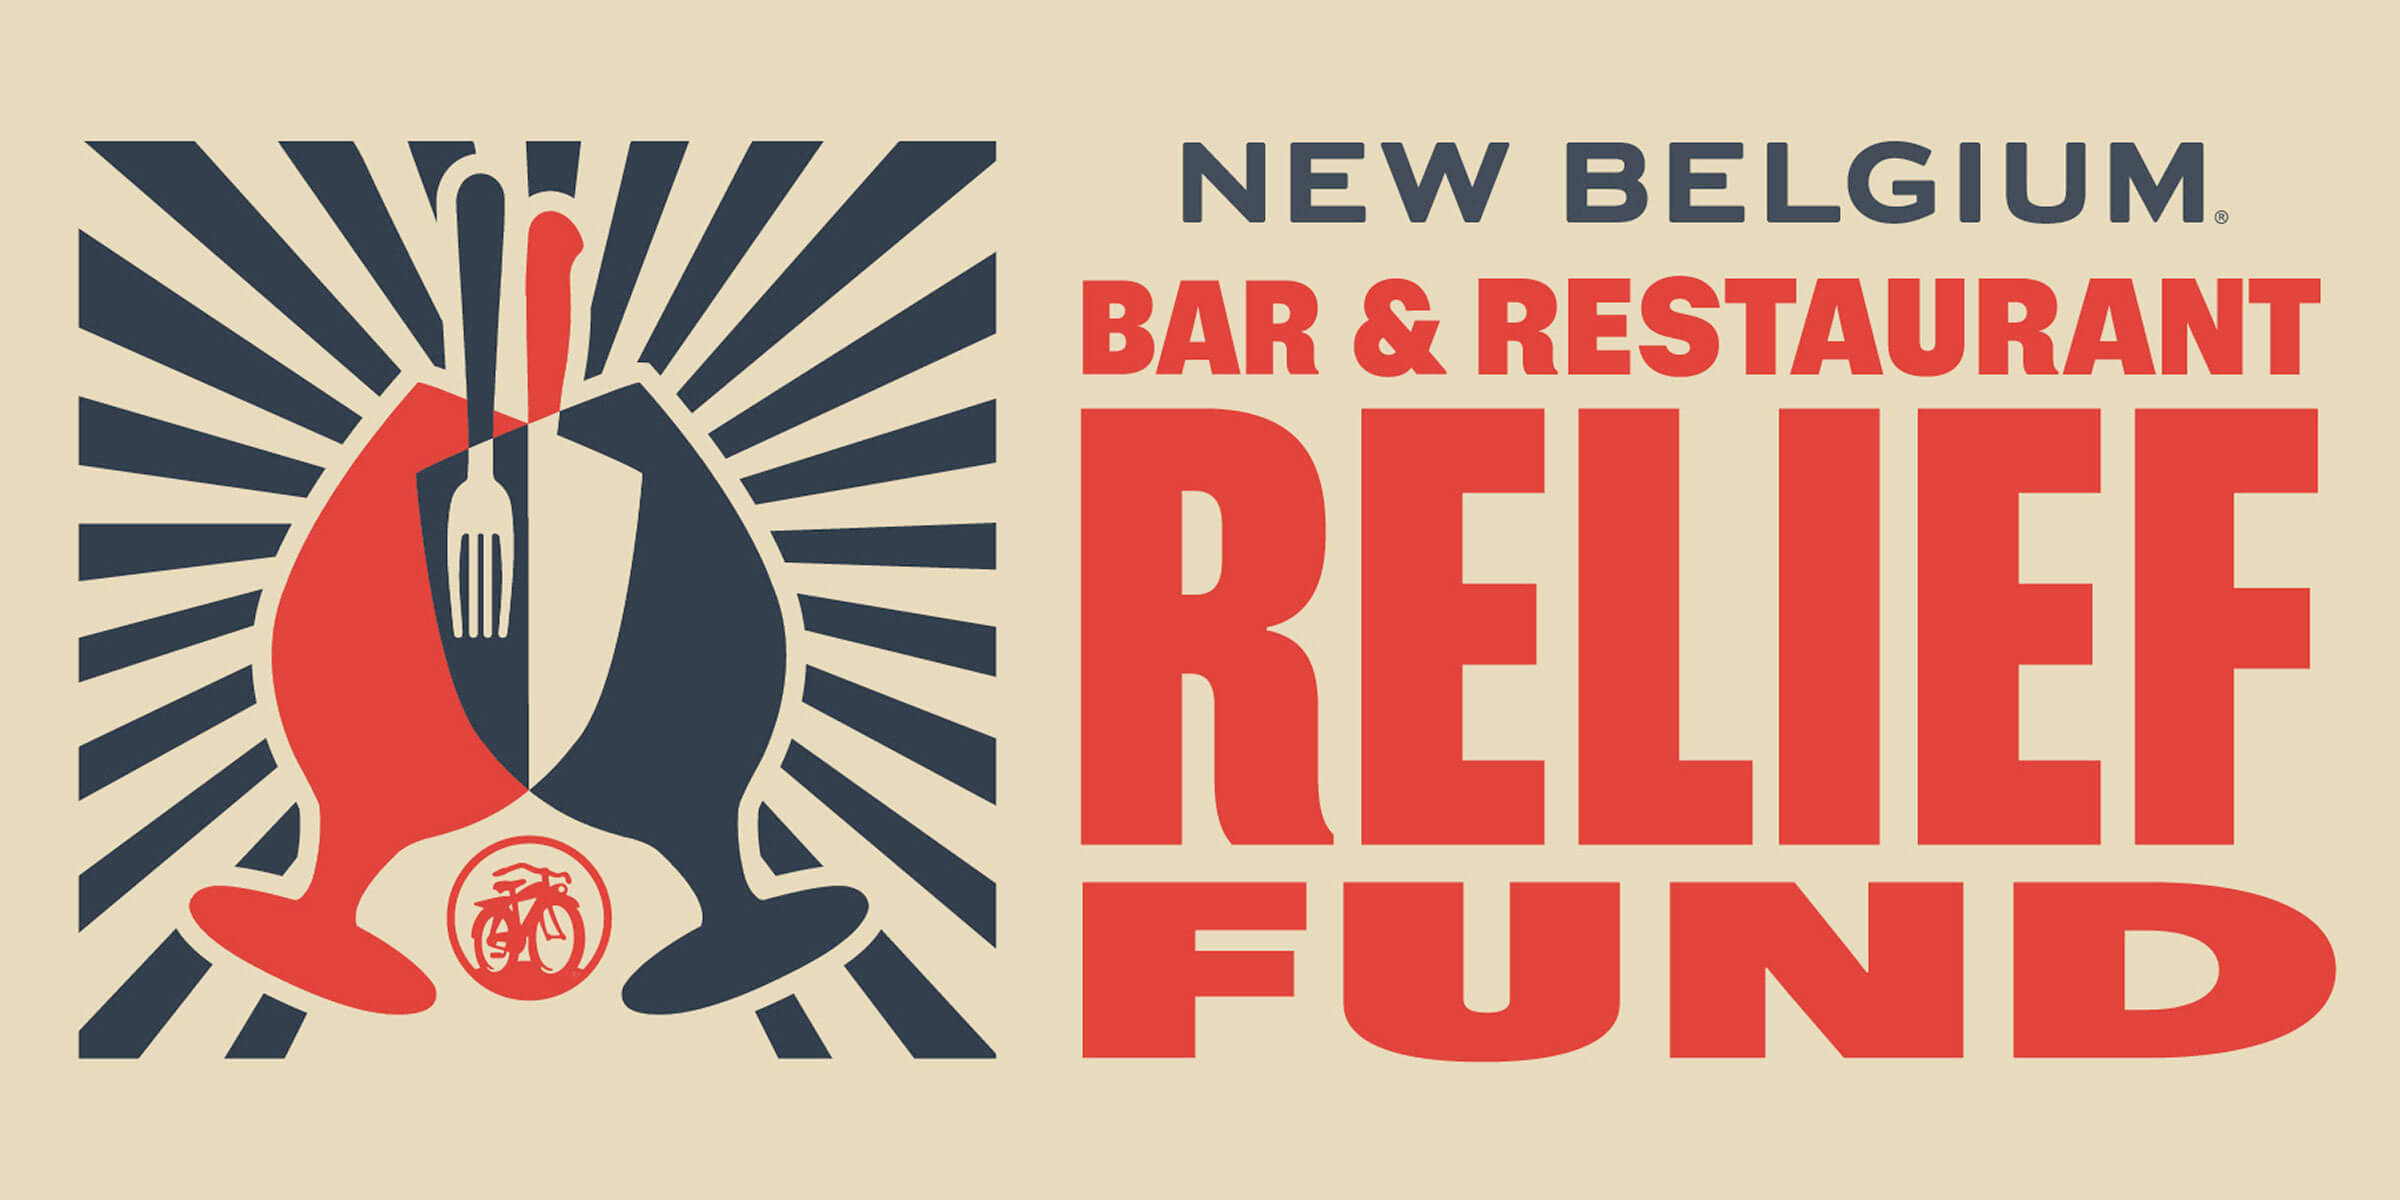 New Belgium Brewing Company has established a relief fund to support laid off and furloughed foodservice workers in its communities due to the coronavirus.